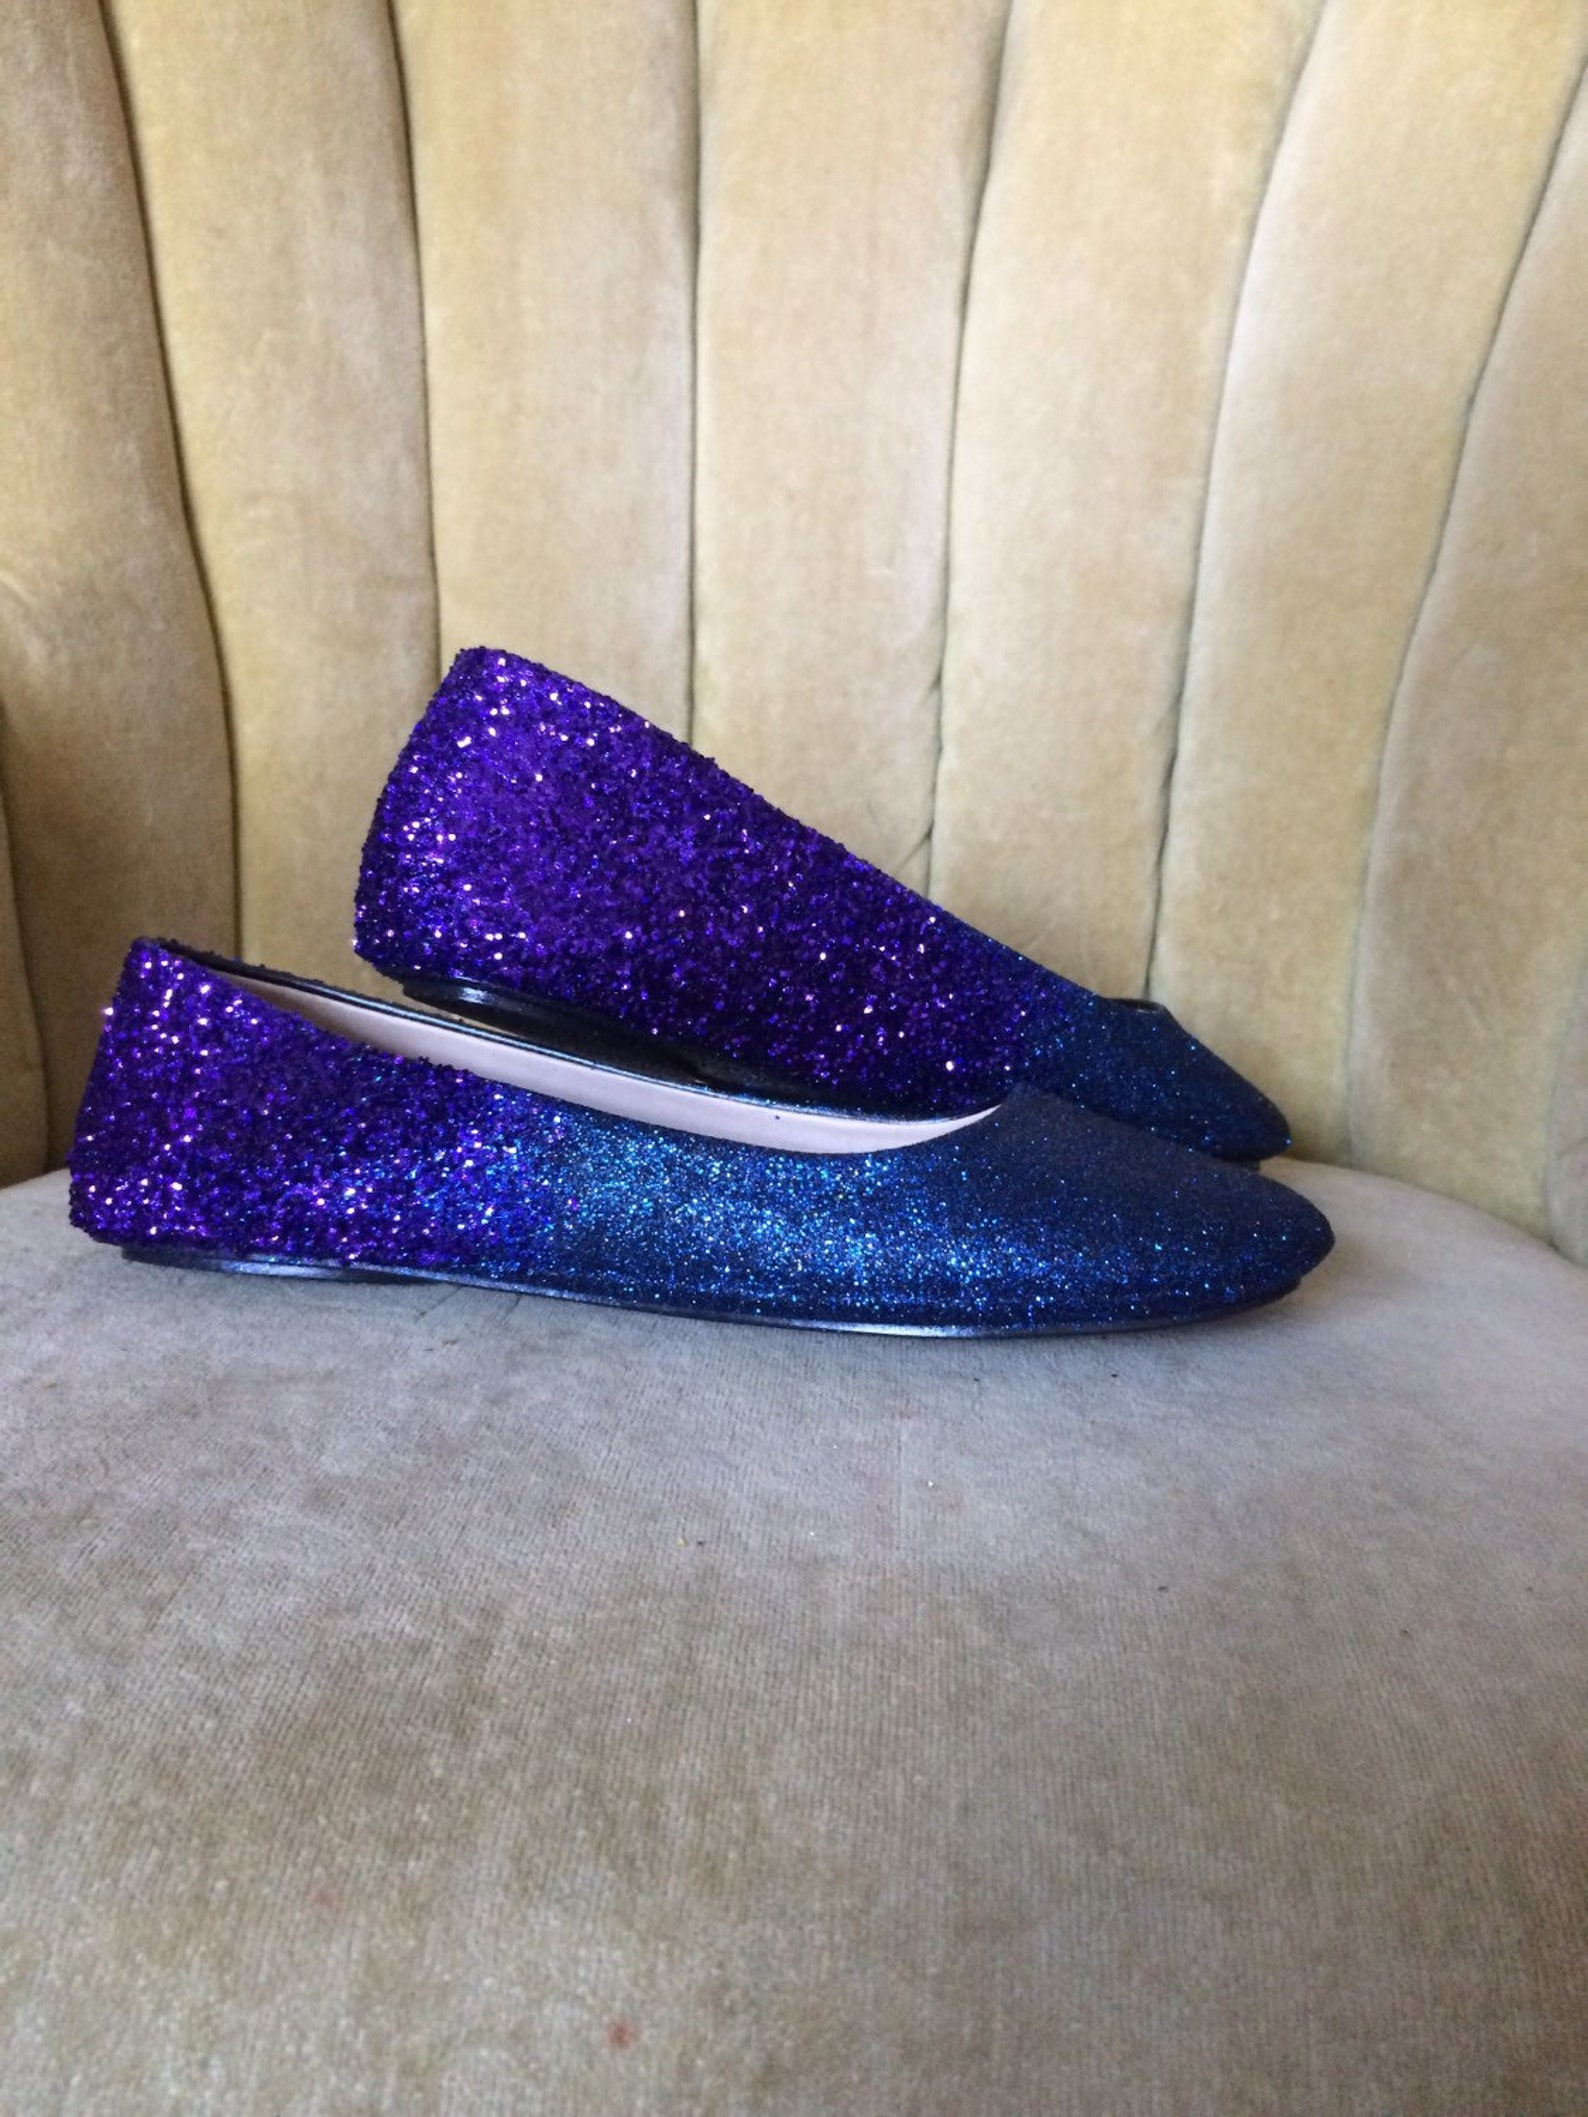 woman's custom made to order ballet flats. glitter flats. slip on shoes. navy blue, royal purple ombre design.